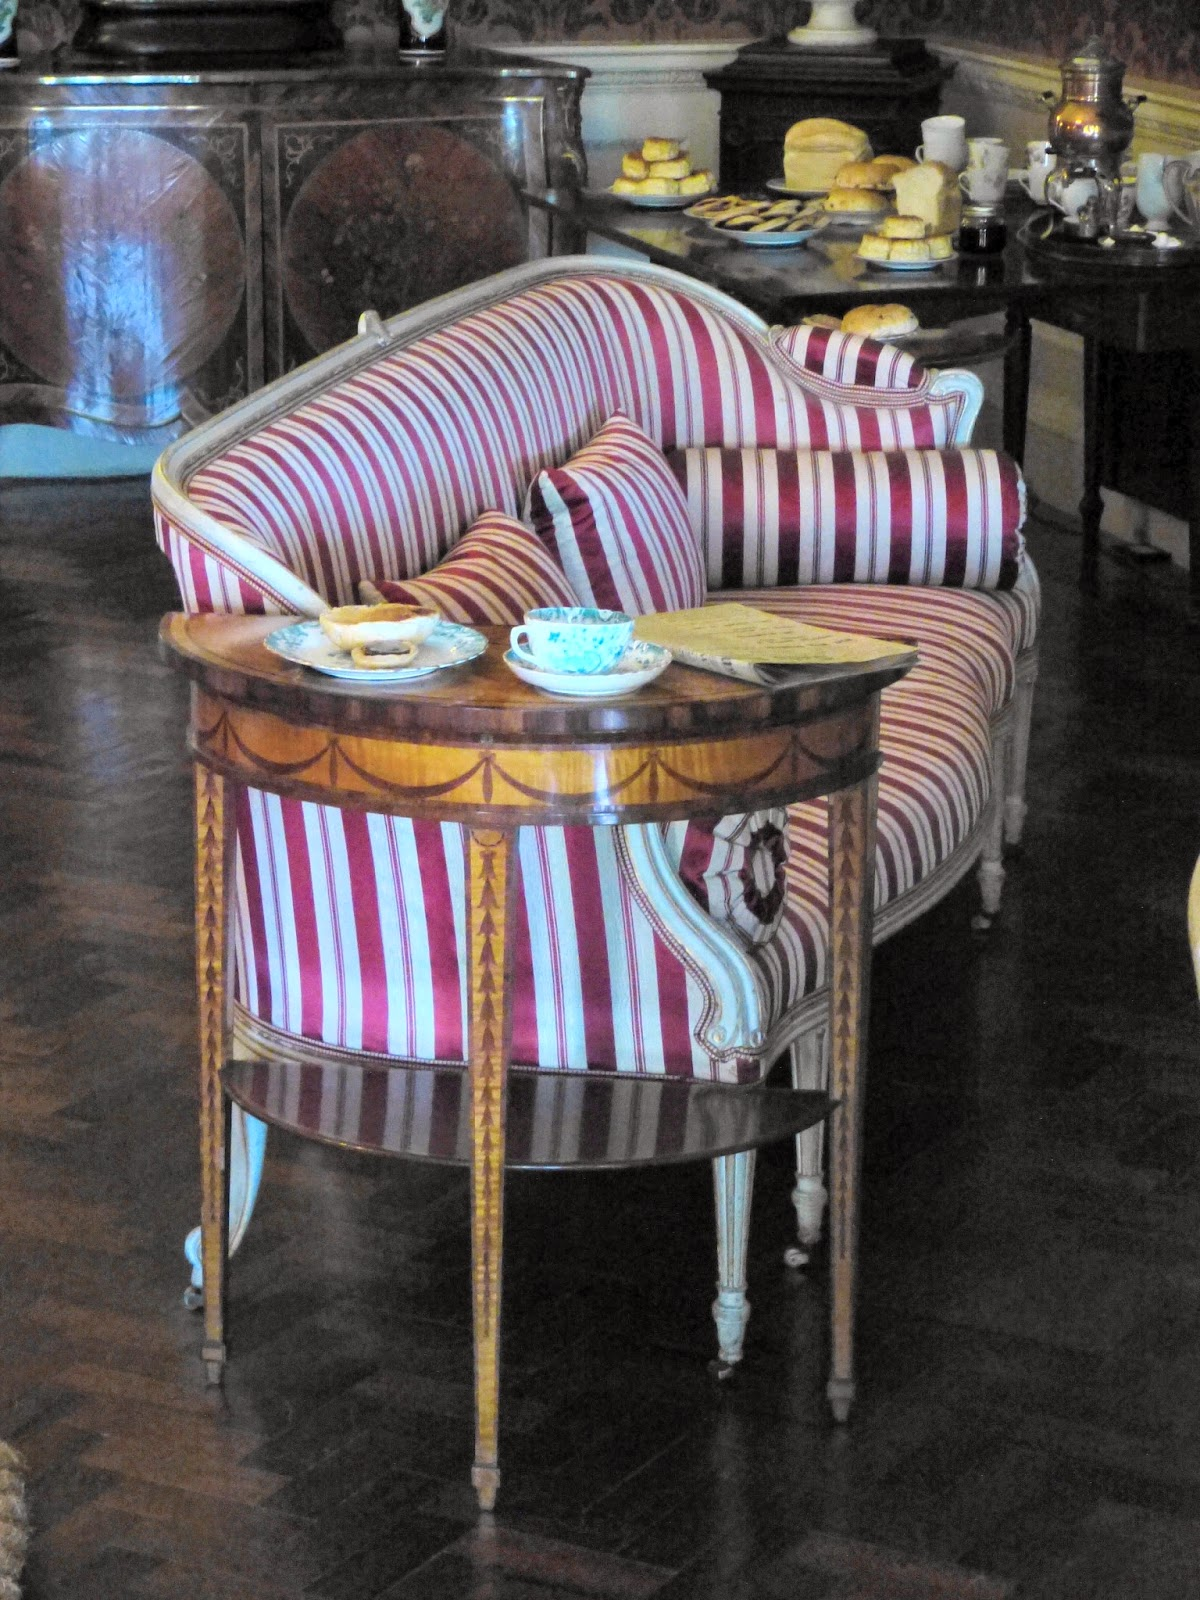 Stripy sofa by Thomas Chippendale the Younger